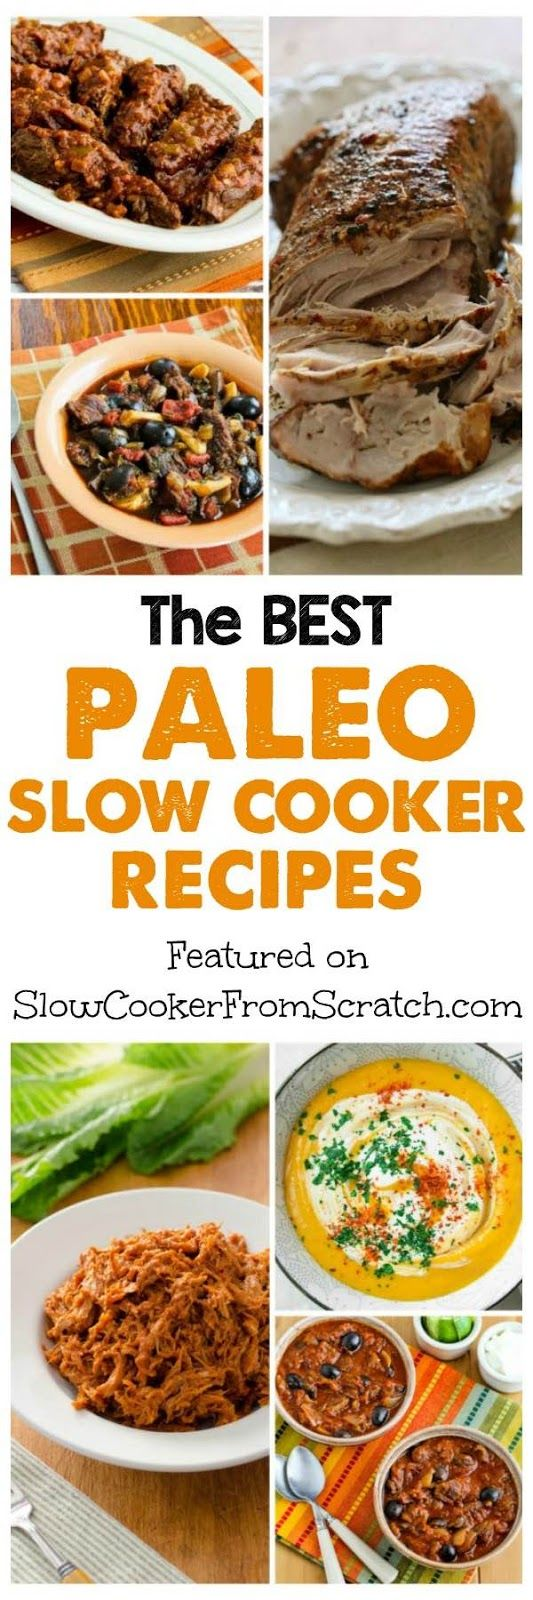 The BEST Paleo Slow Cooker Recipes; healthy grain-free and dairy-free recipes to make in the crockpot!  [featured on SlowCookerFromScratch.com]